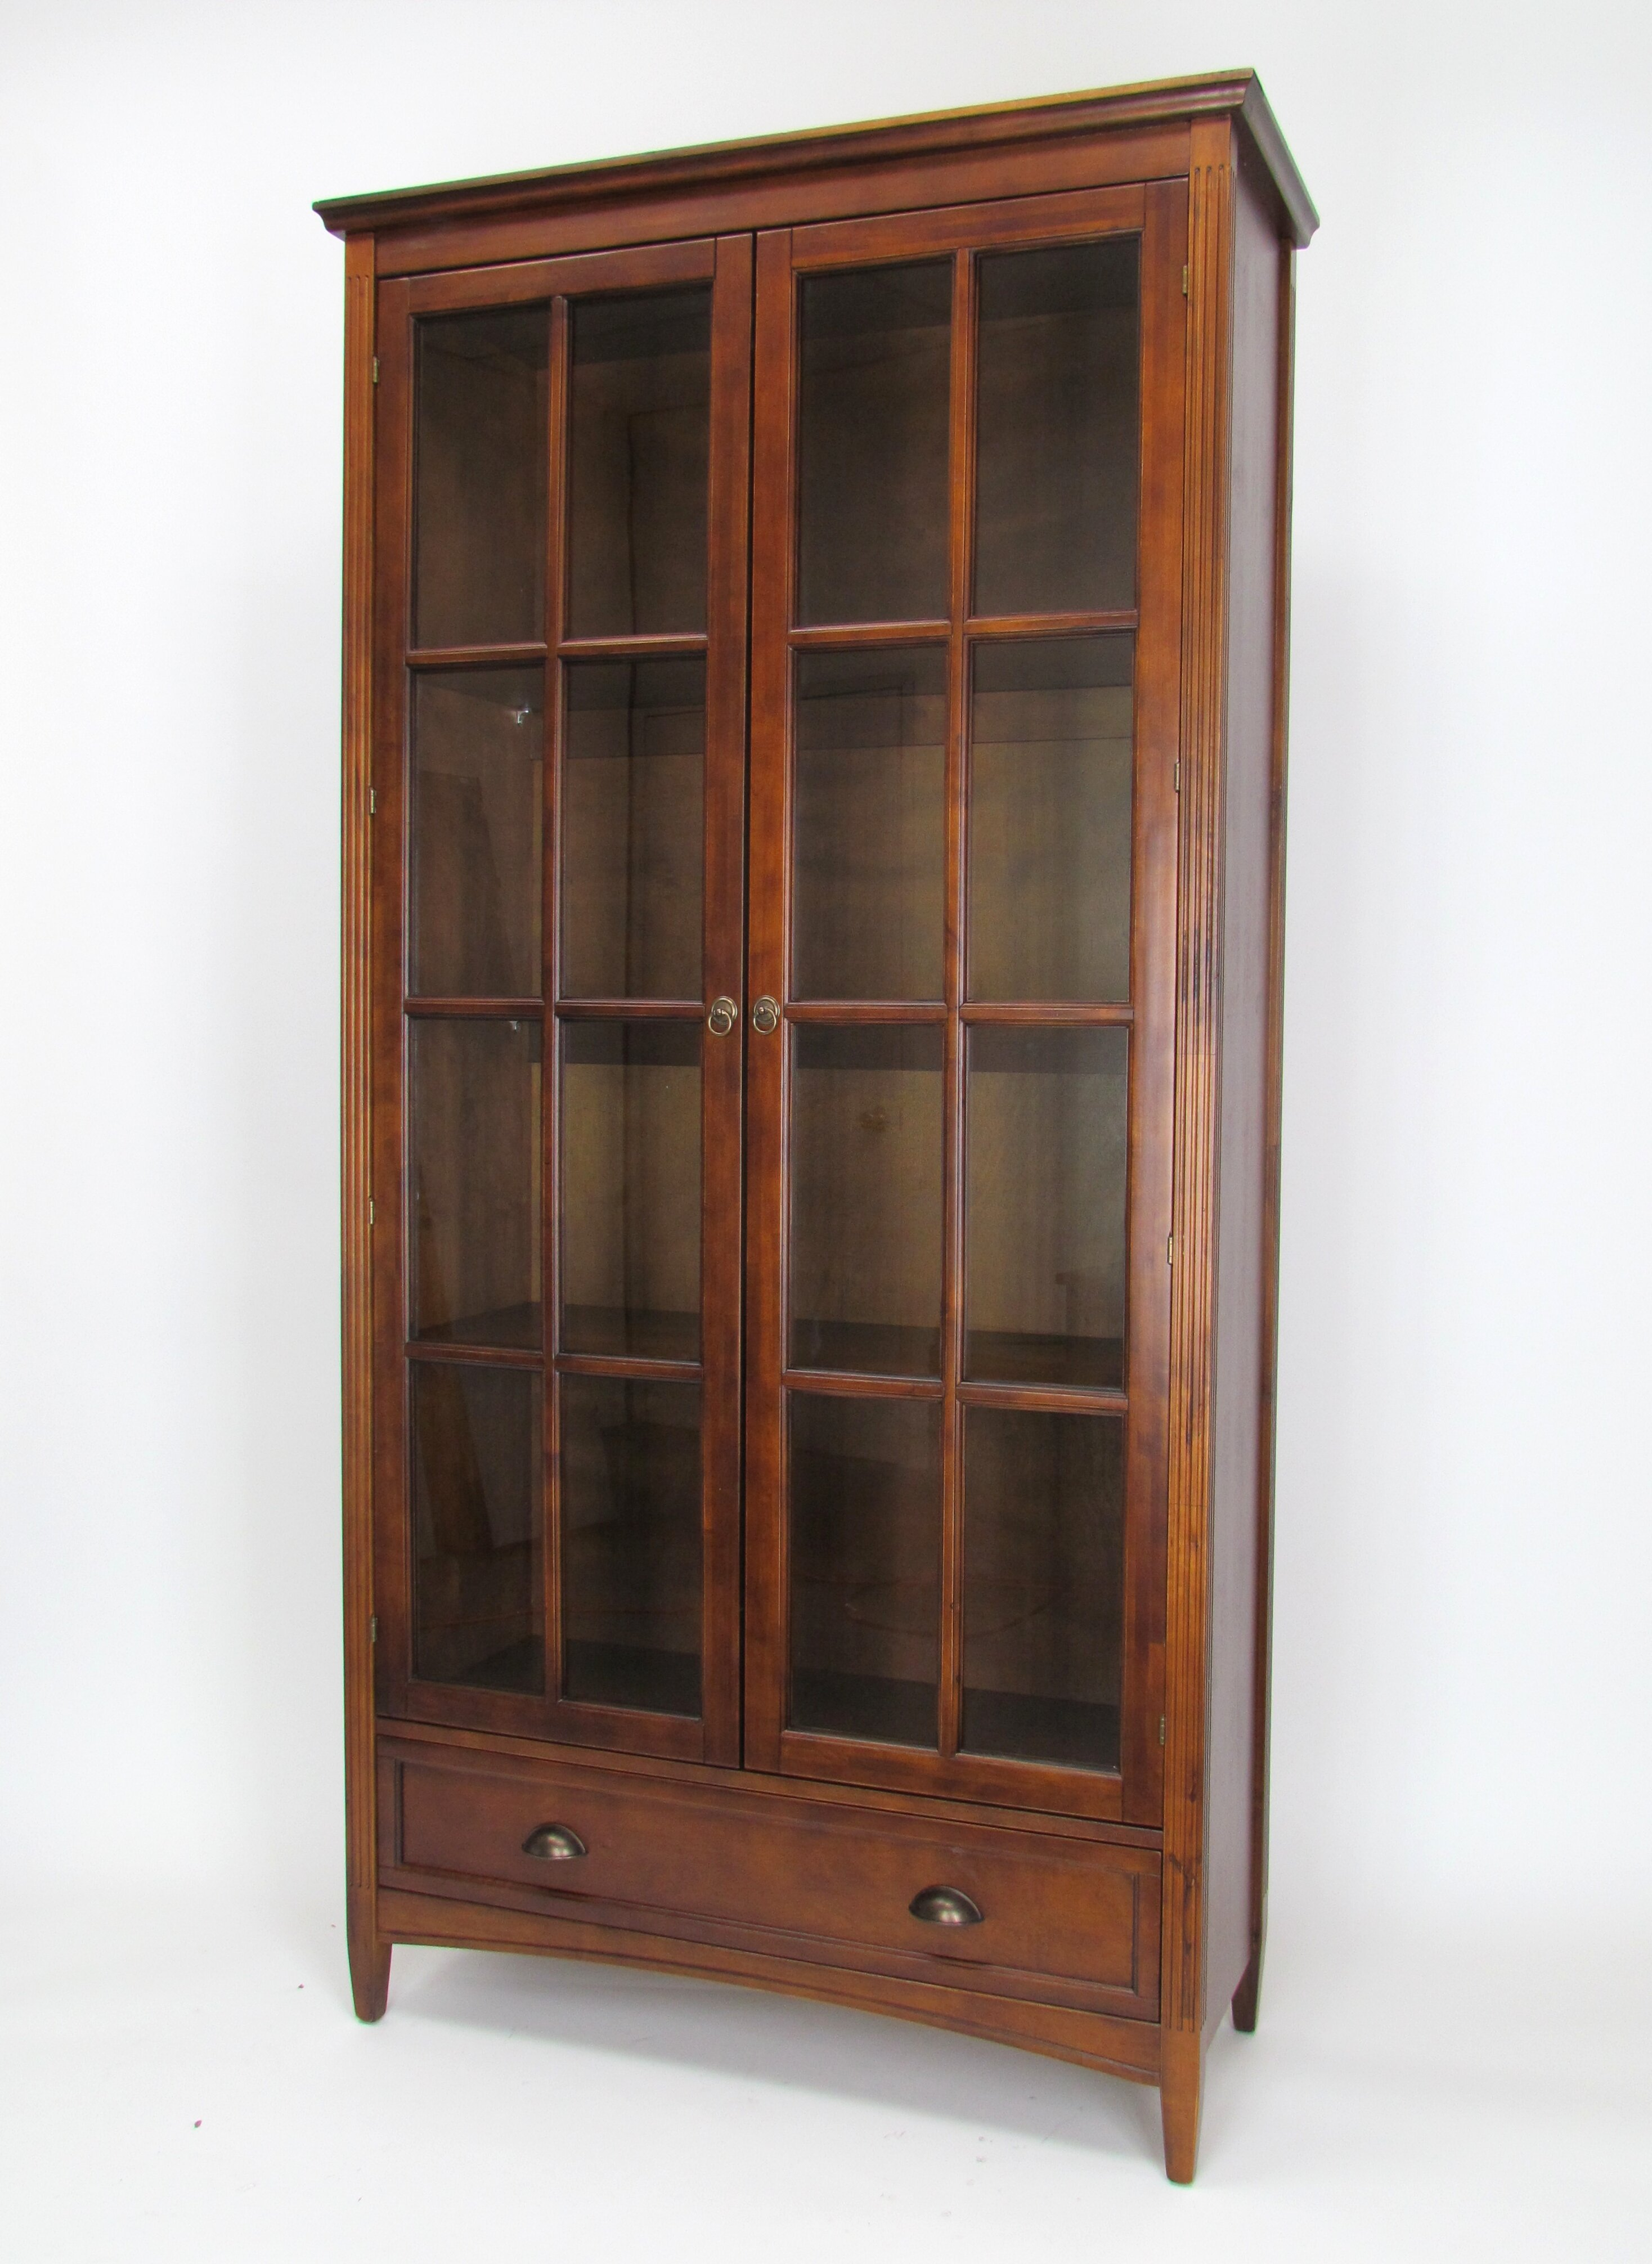 products four with hands vfhb item doors enclosed number camino bookcase sierra bookcases glass